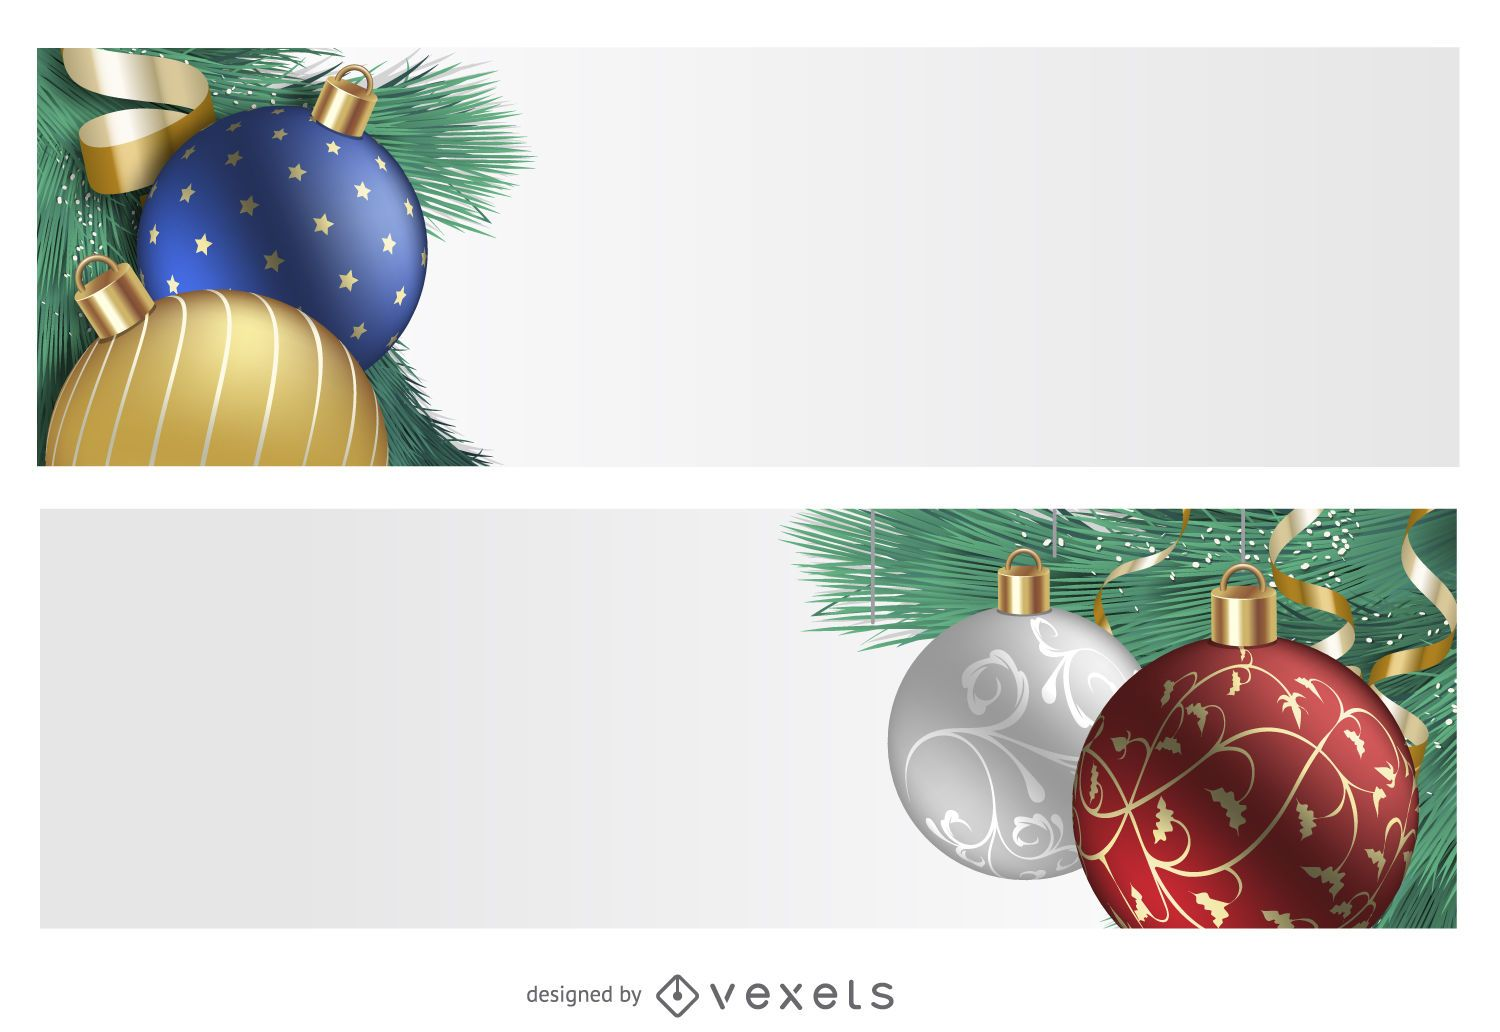 3D ornament Christmas banner set - Vector download